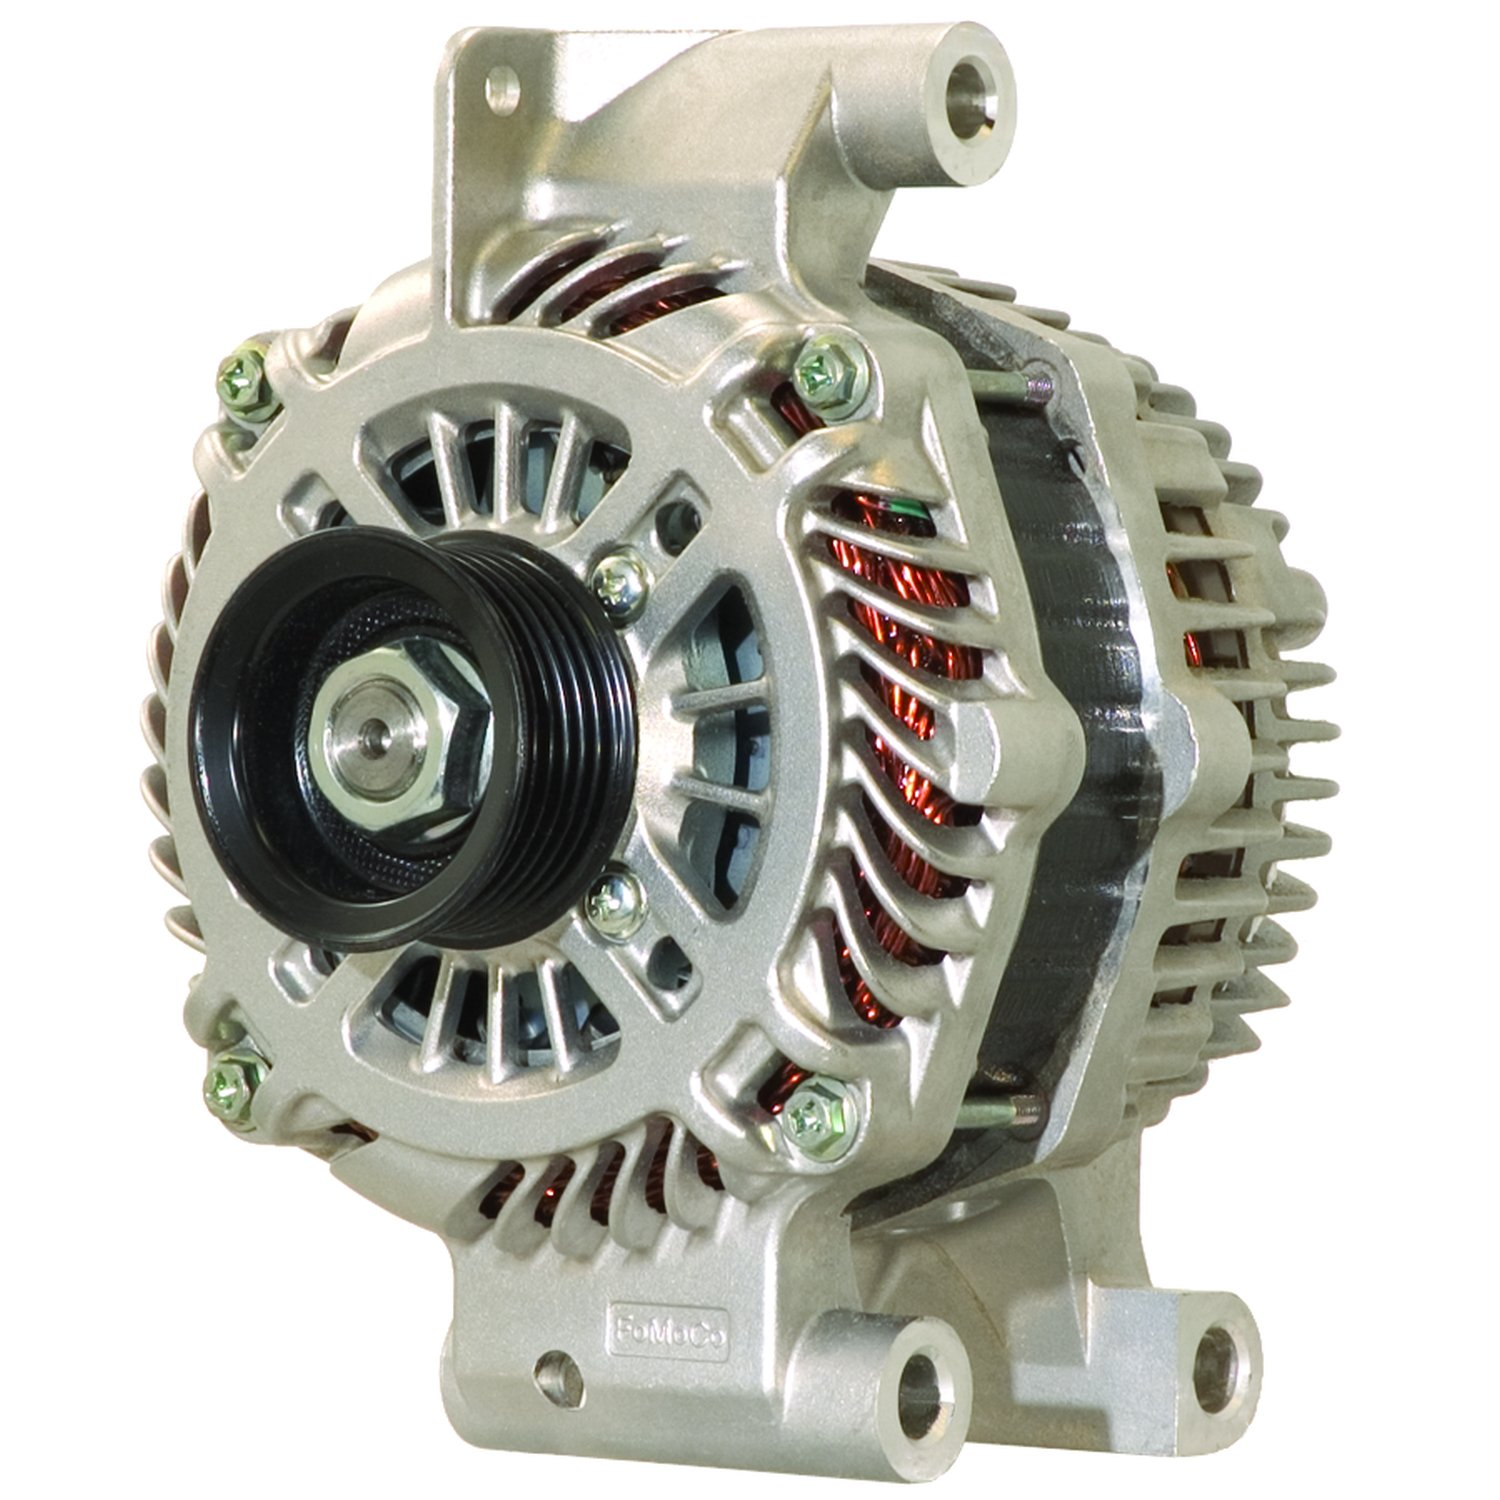 DB Electrical ABO0241 Alternator For Chevy 3.5L 3.9L Impala 06 07 08 09 10 11//Monte Carlo 06 07